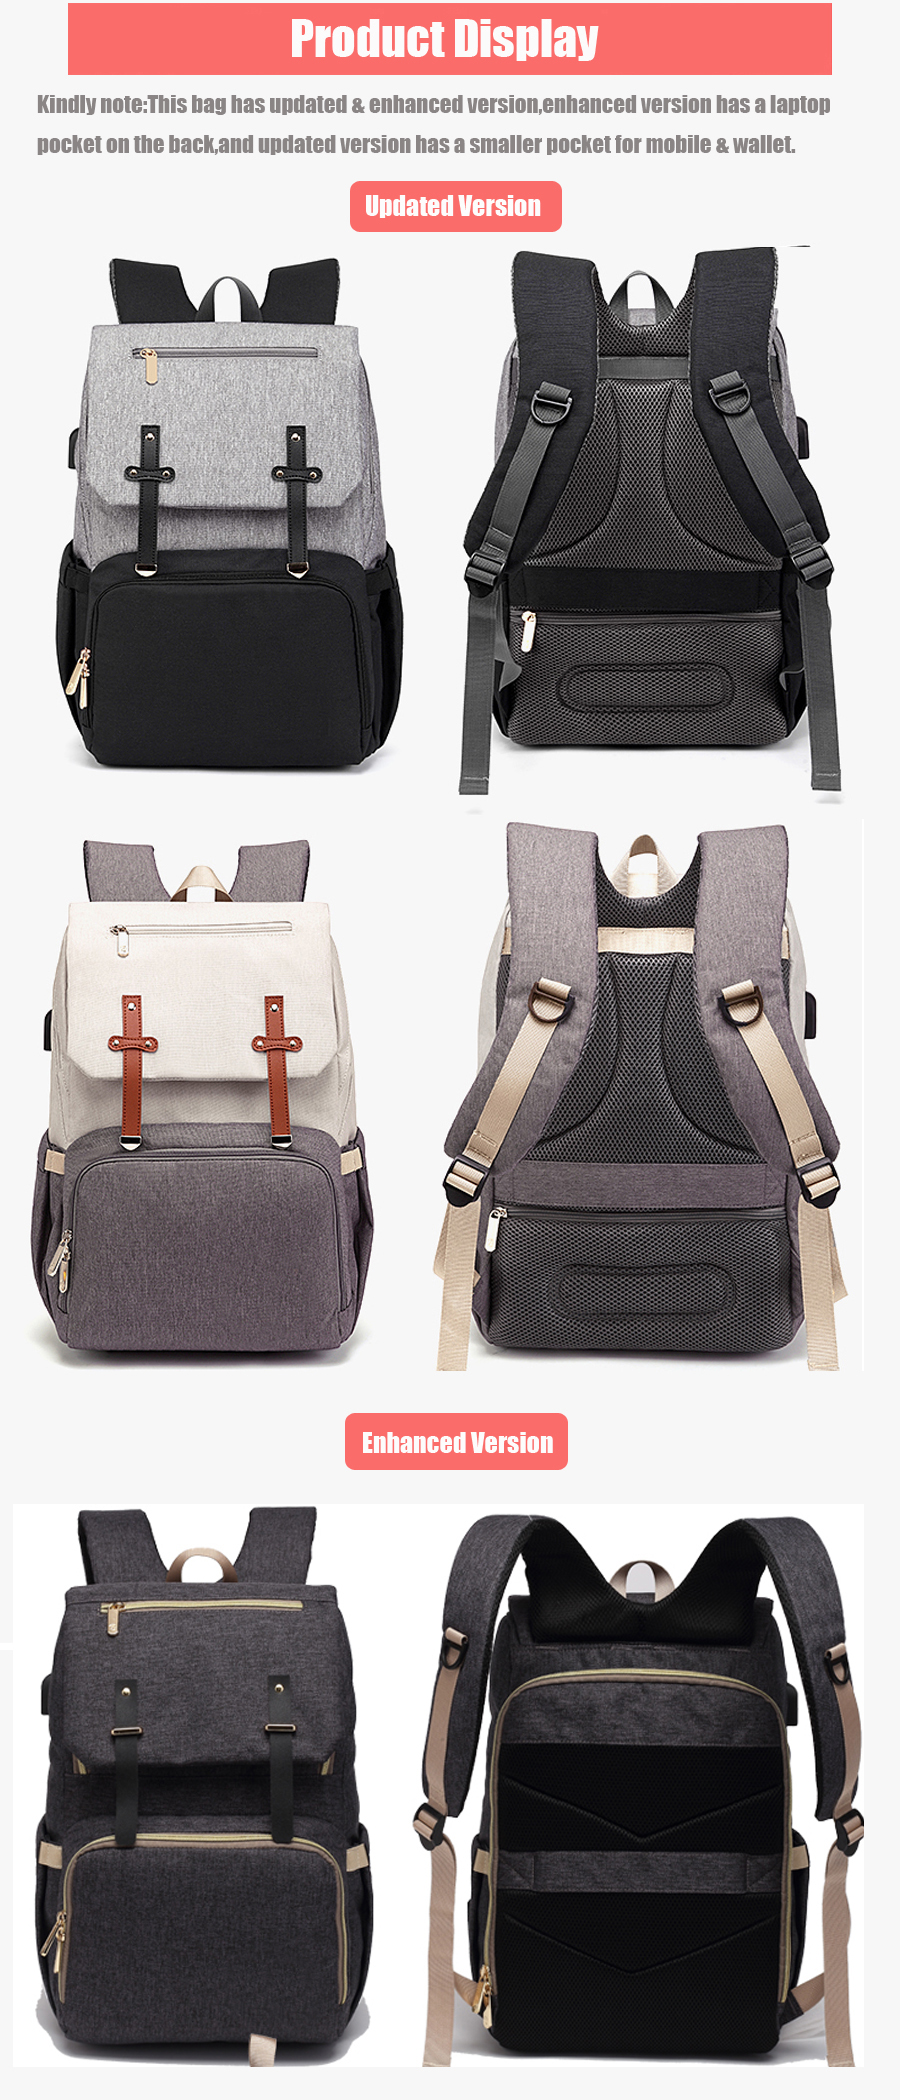 H1d5a96dafab442f7a576f77be6b63ce7V Baby Diaper Bag with USB Port Waterproof Nappy Bag Mommy Backpack Laptop Bag Maternity Bags With Rechargeable Bottle Holder